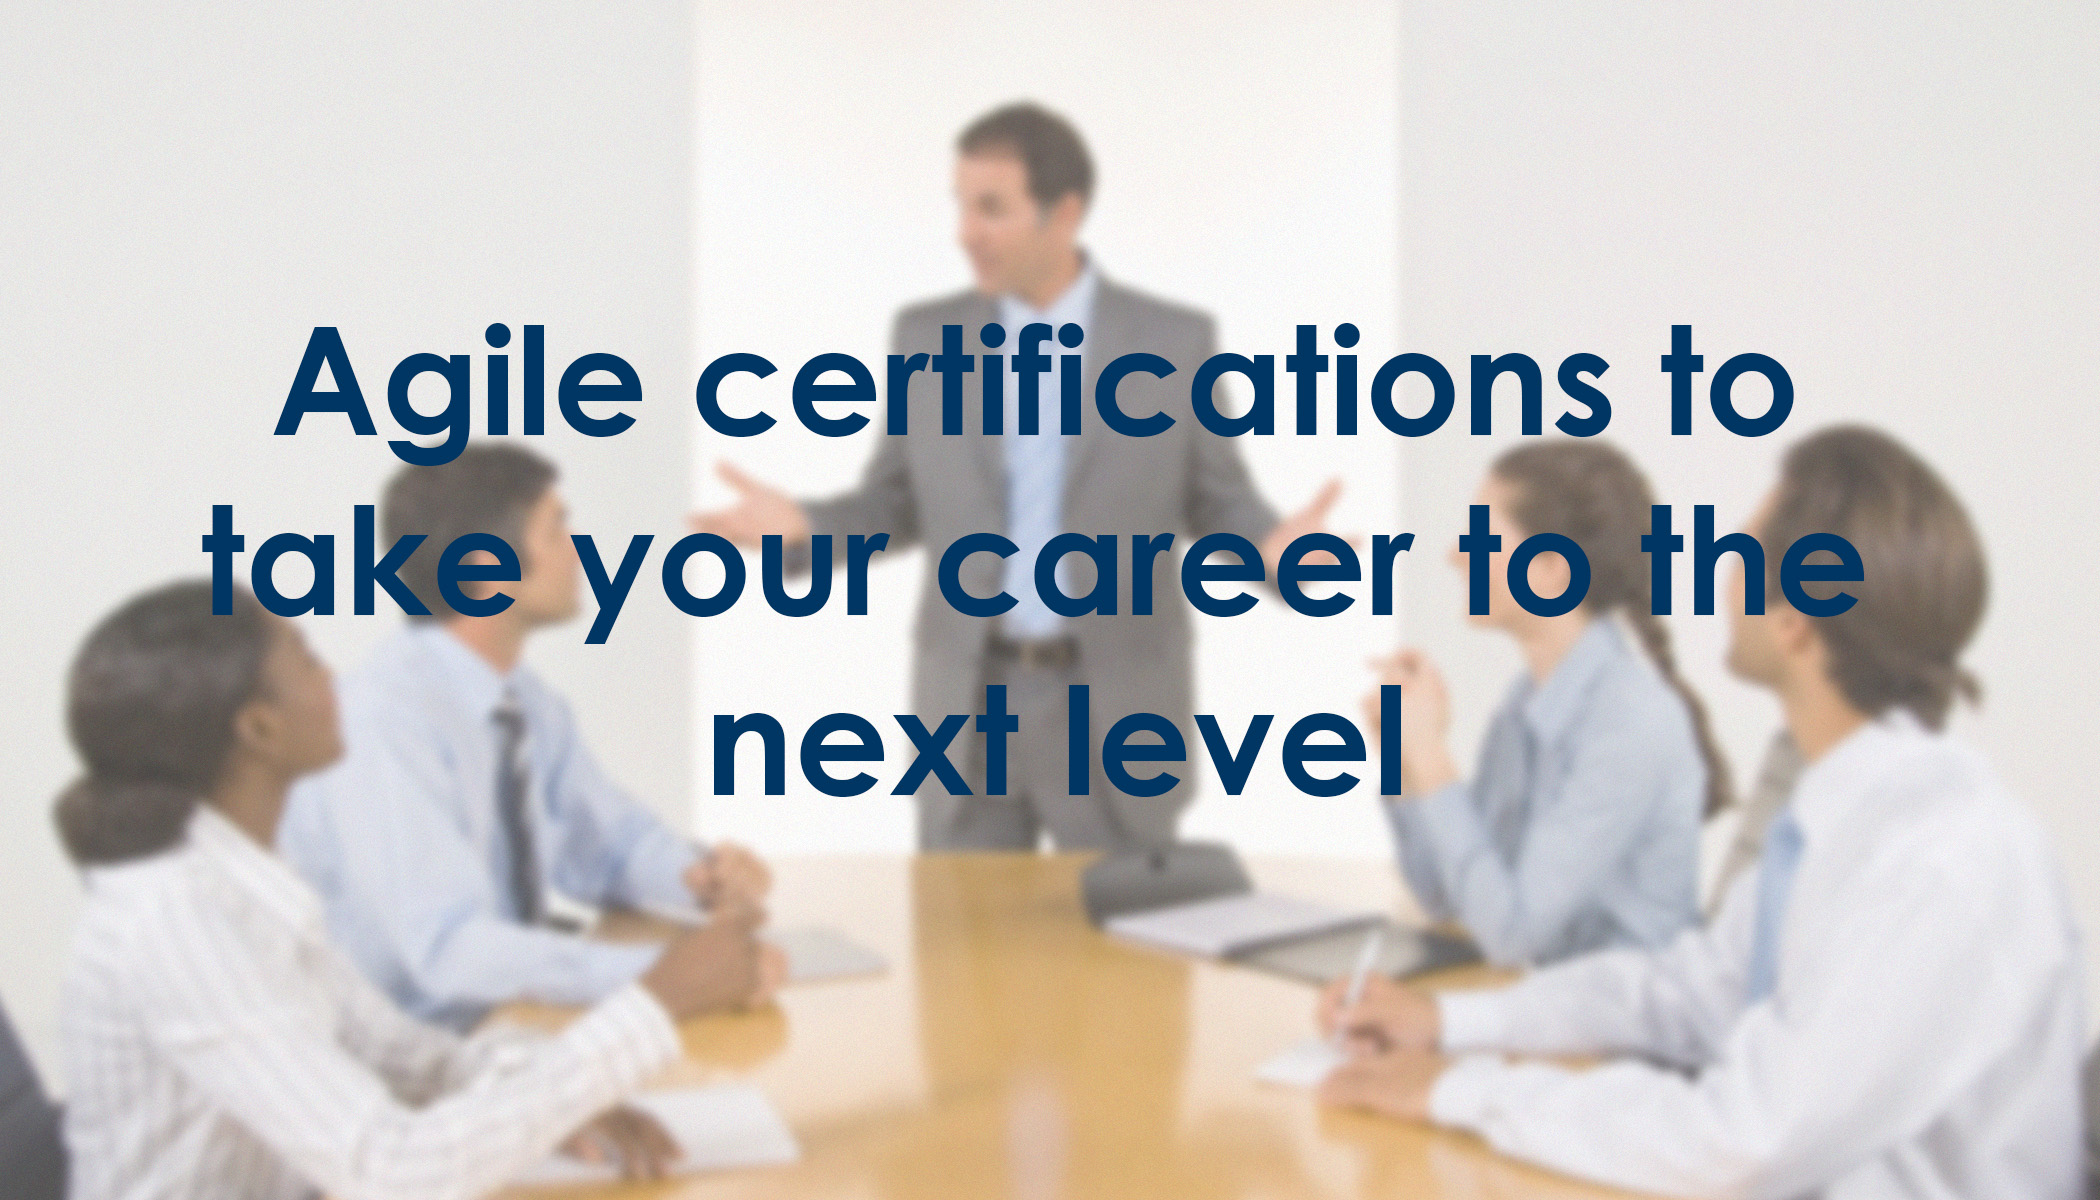 Agile Certifications To Take Your Career To The Next Level